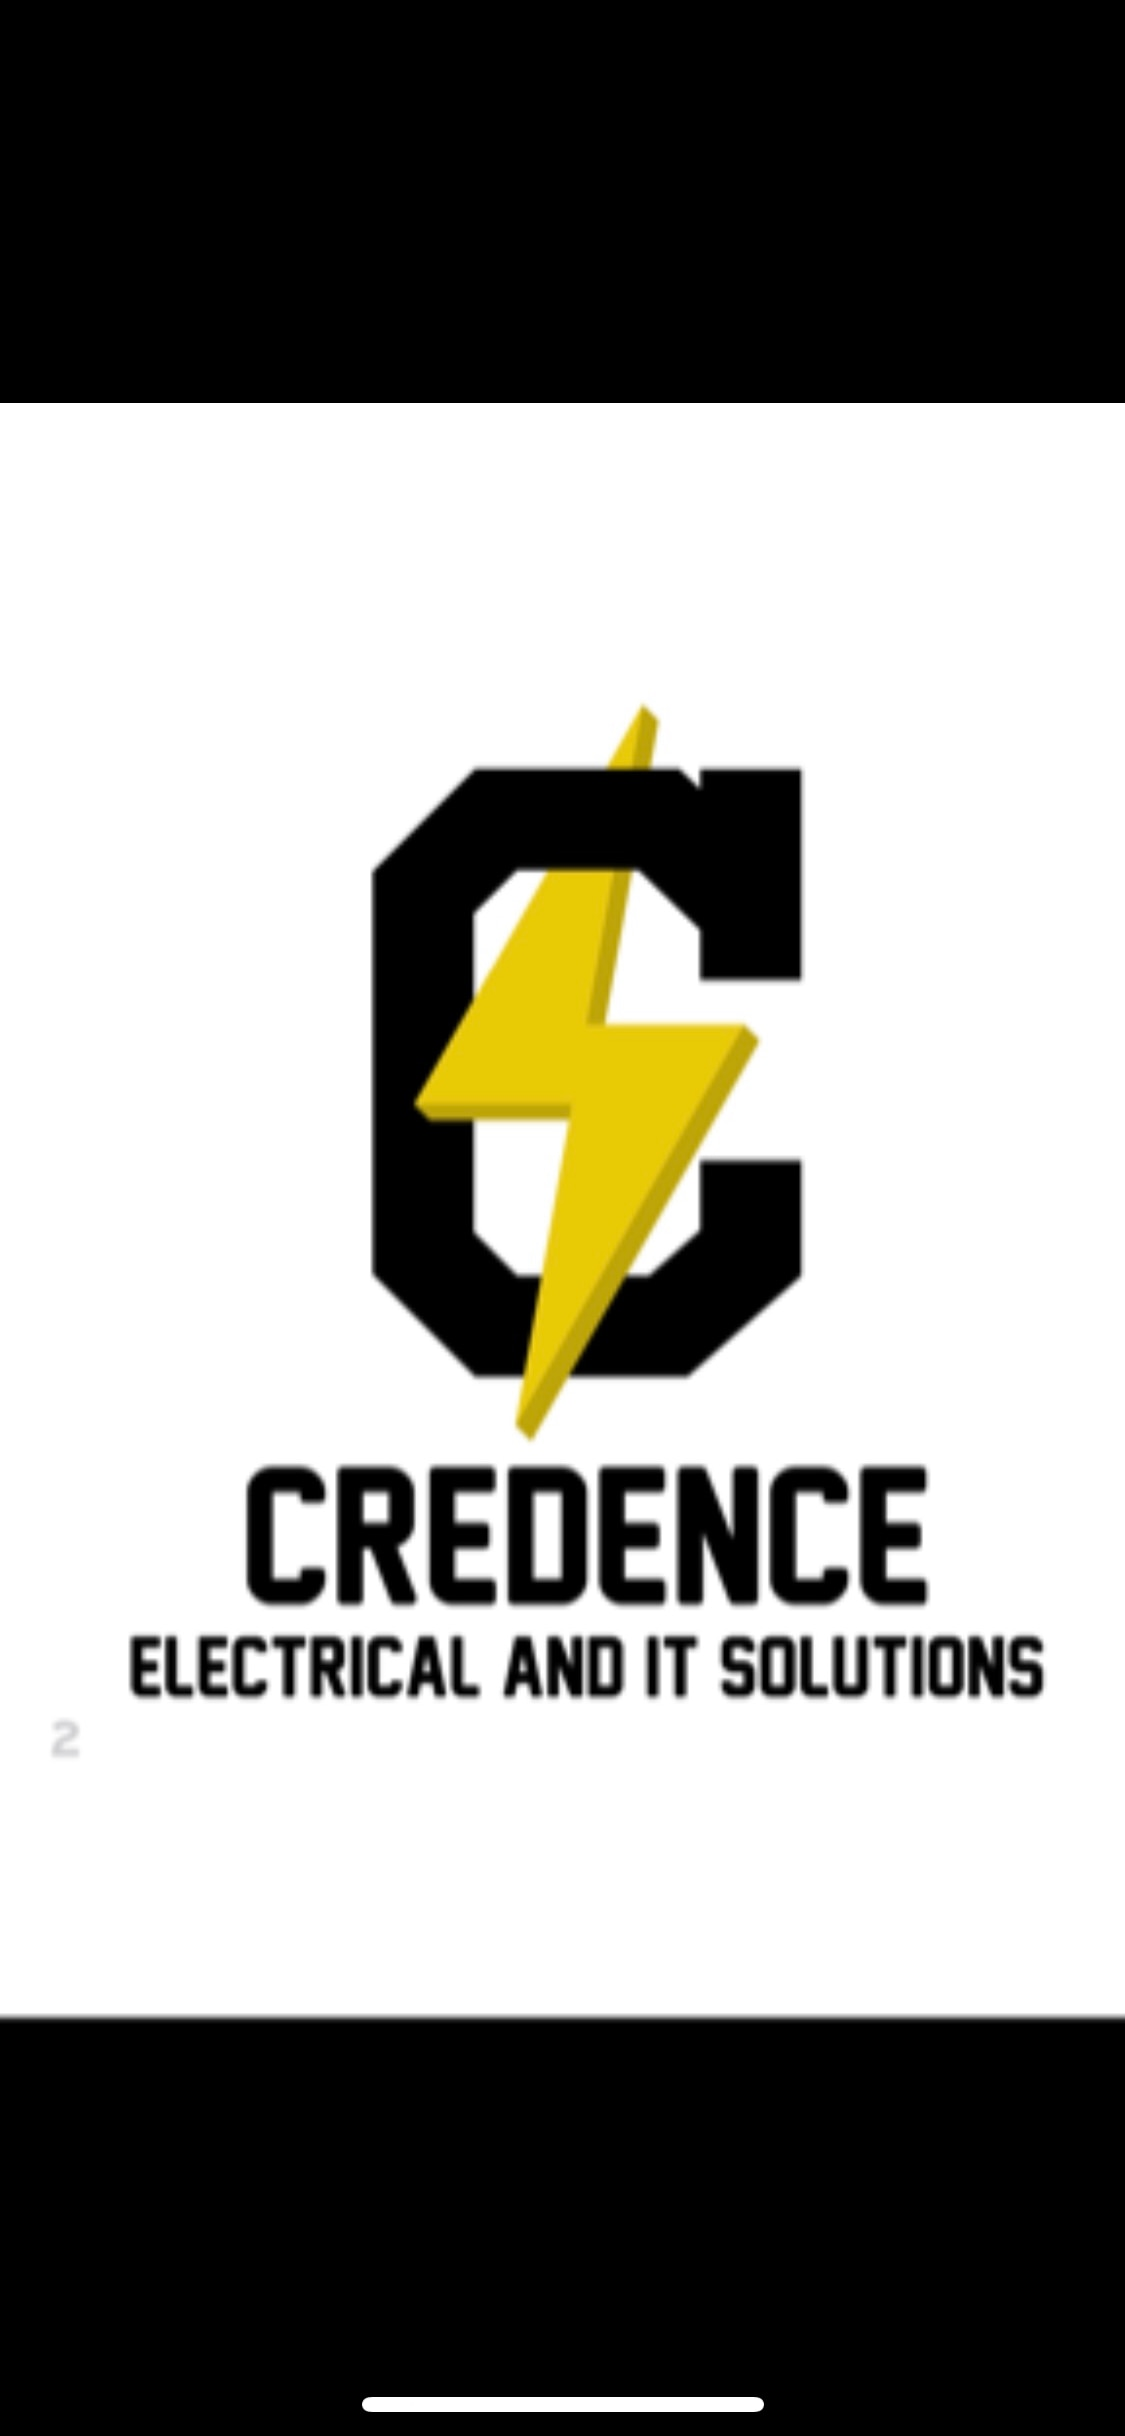 Credence Electrical and IT Solutions logo